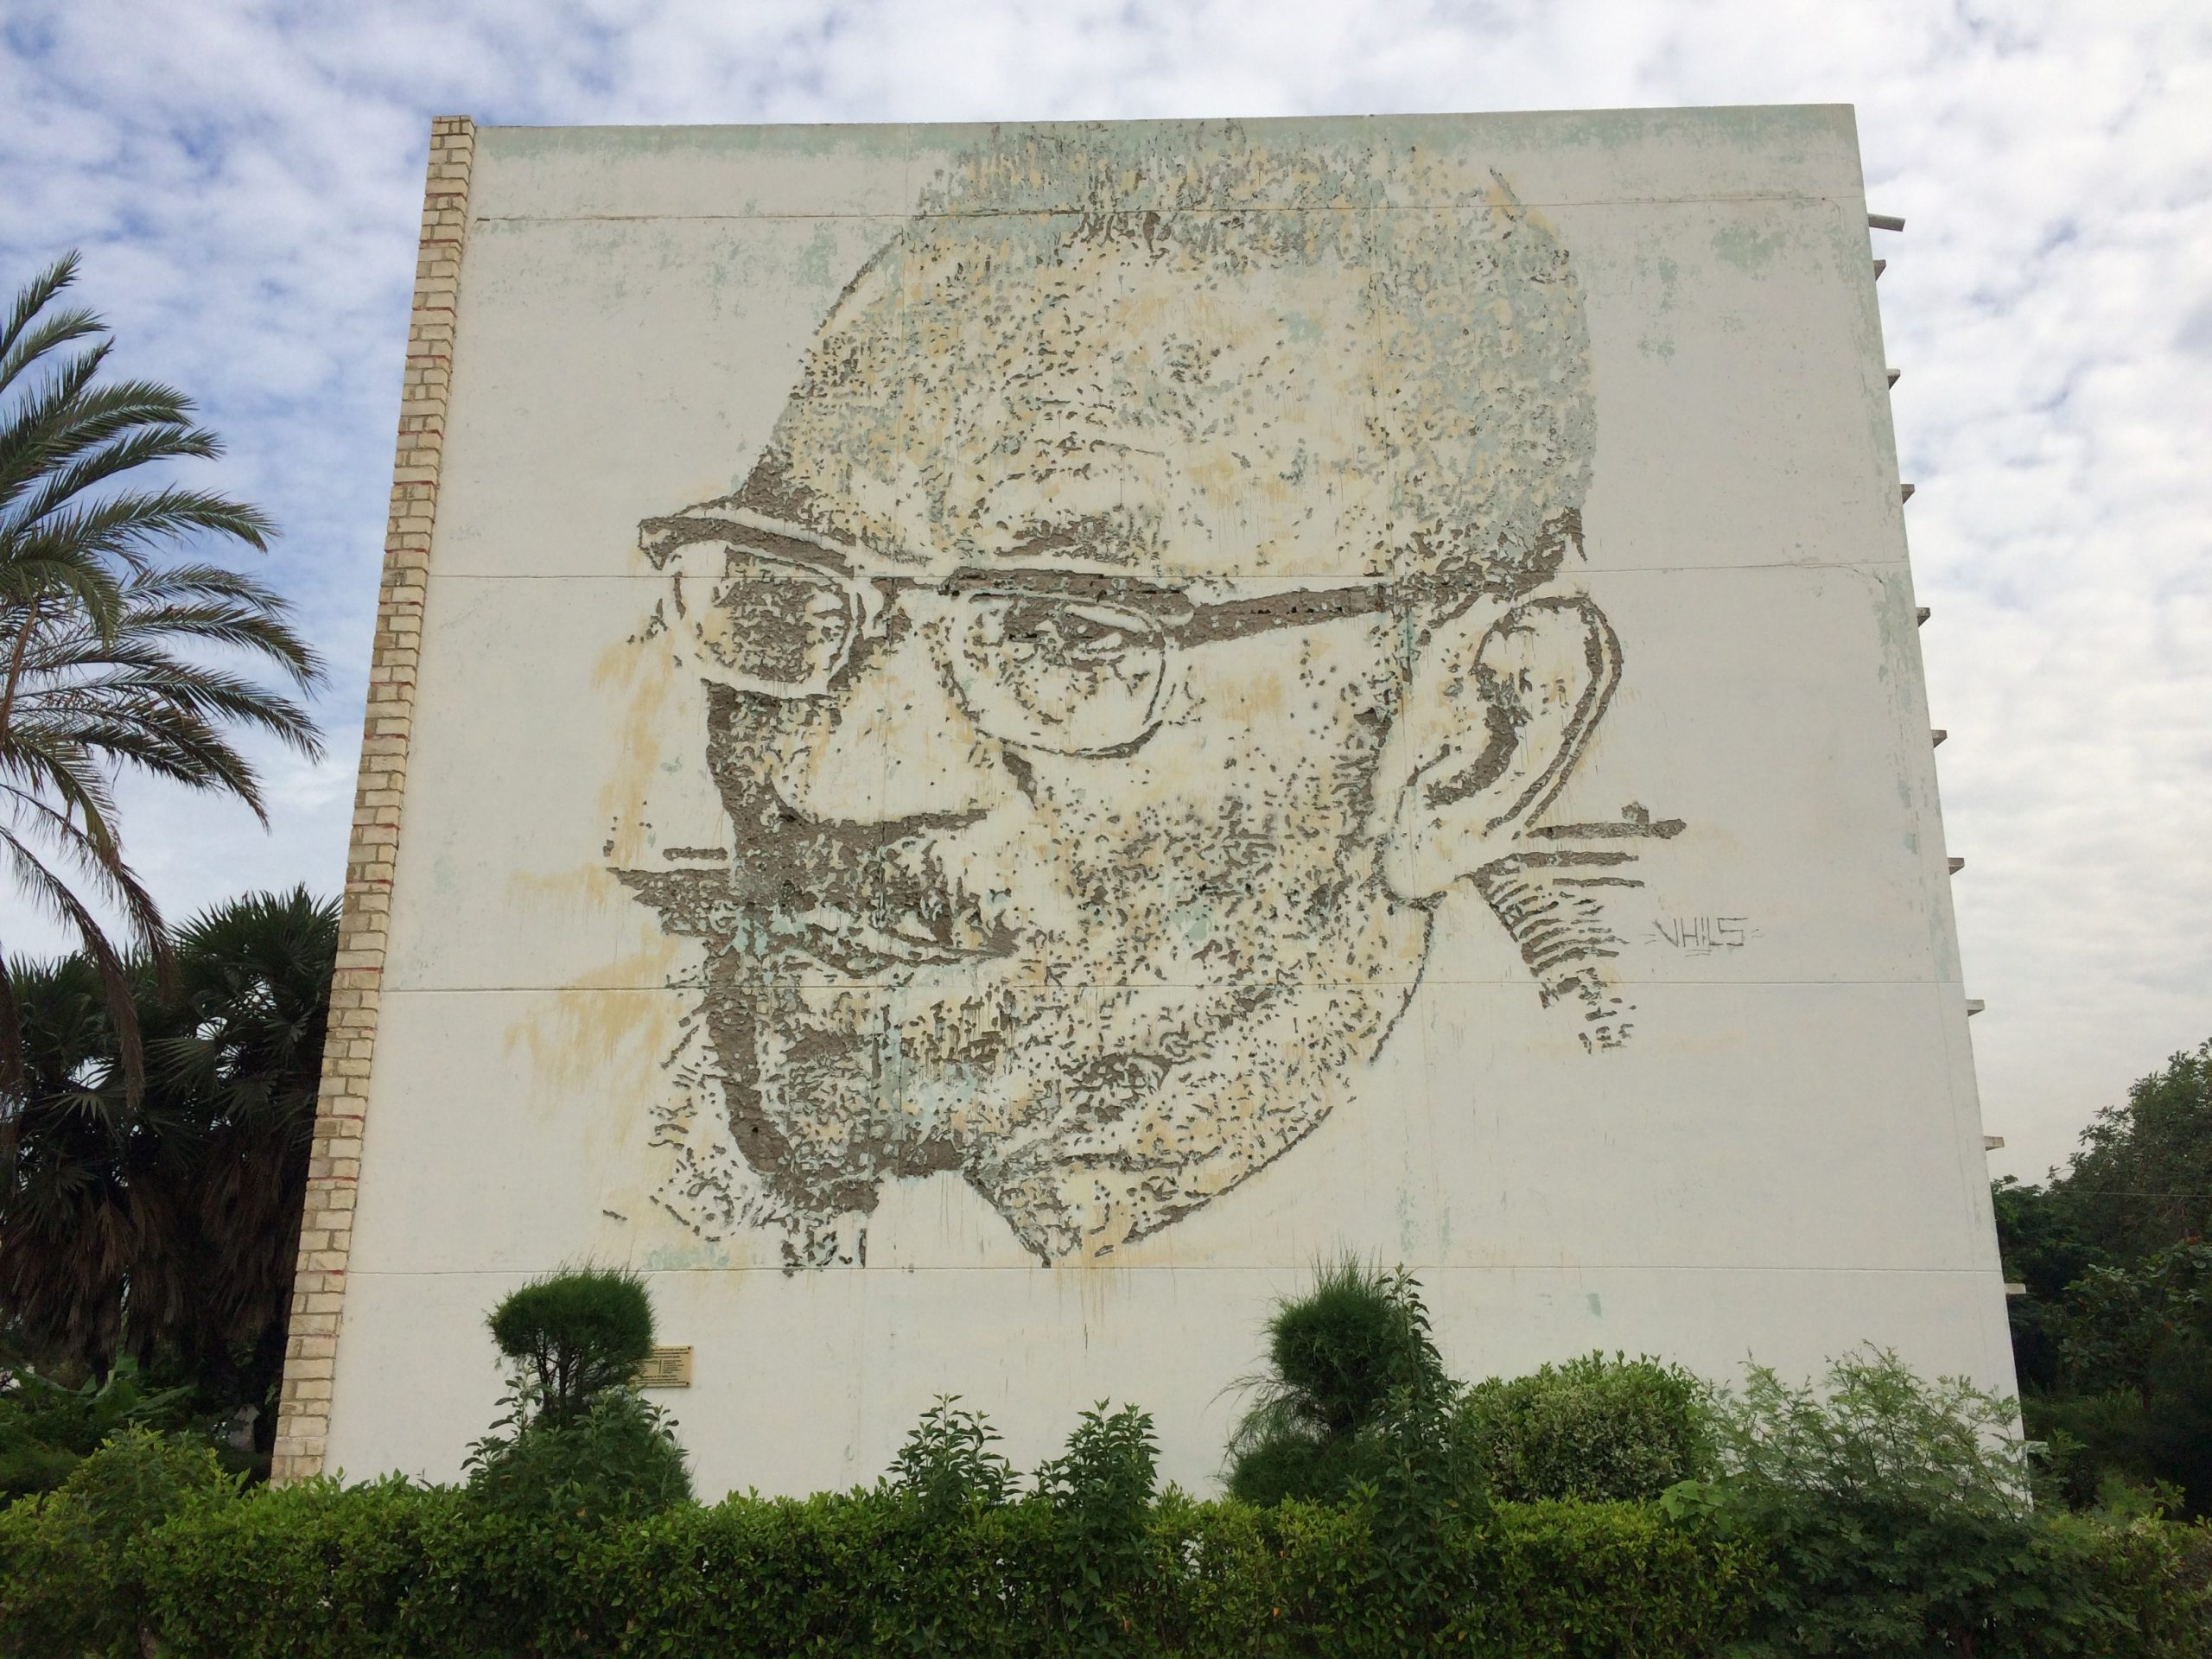 Picture of a man on a wall